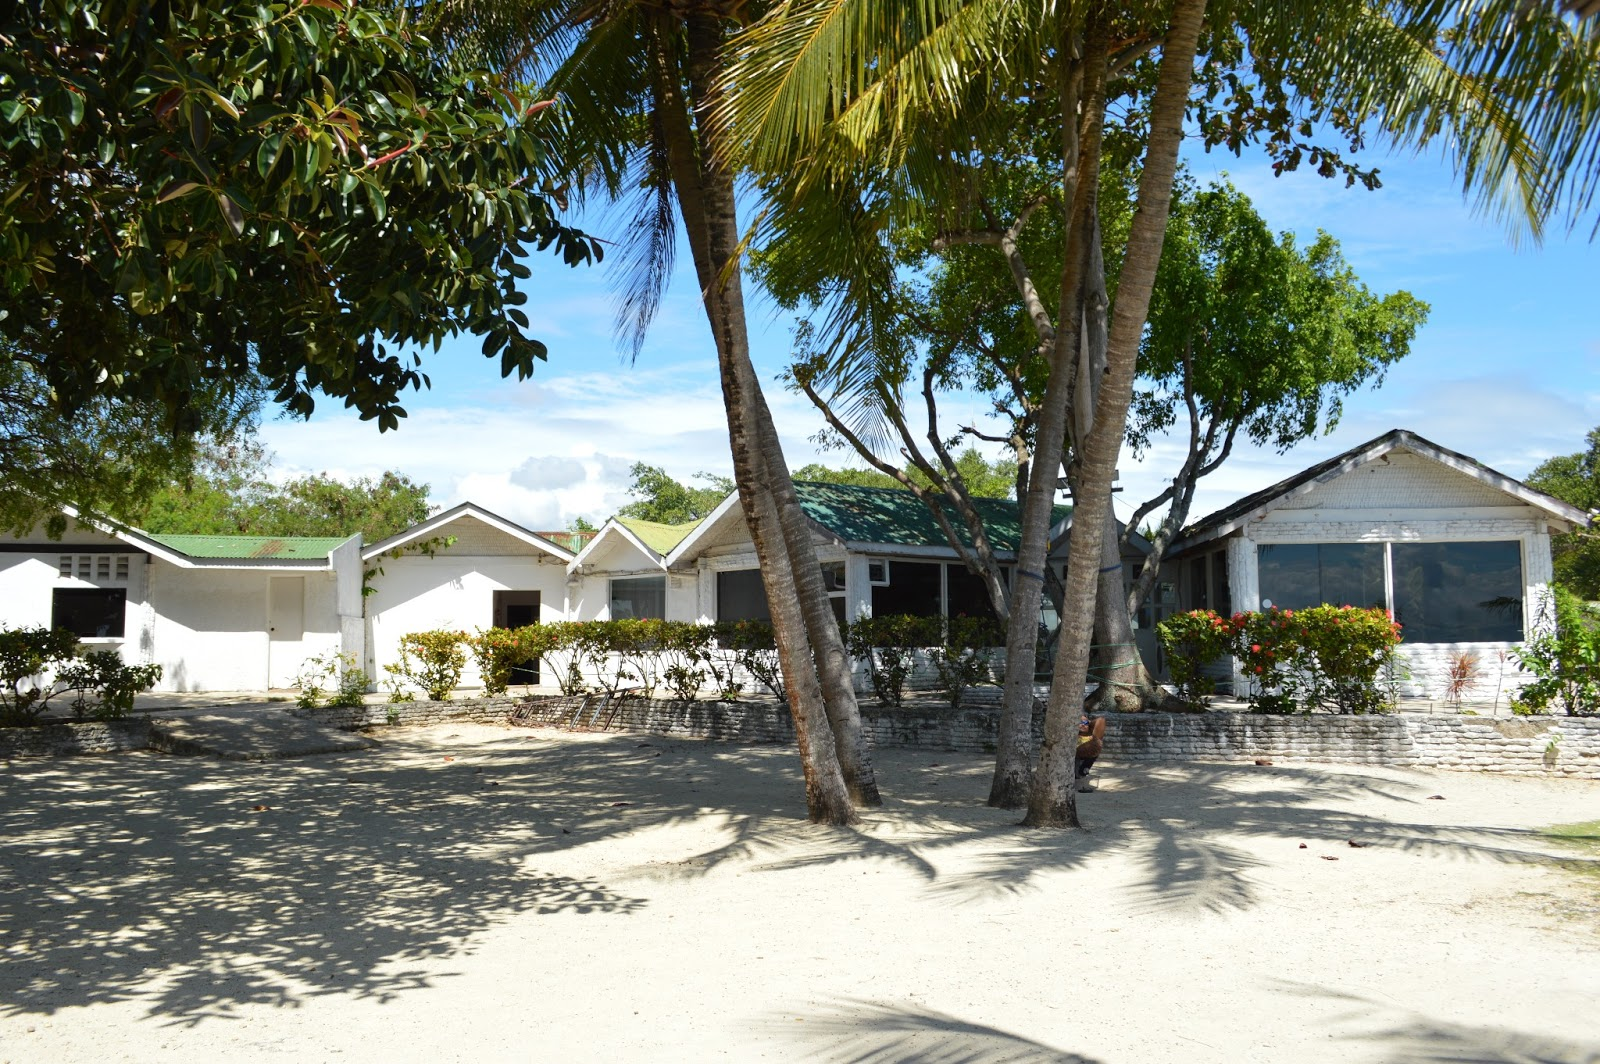 Pado resort